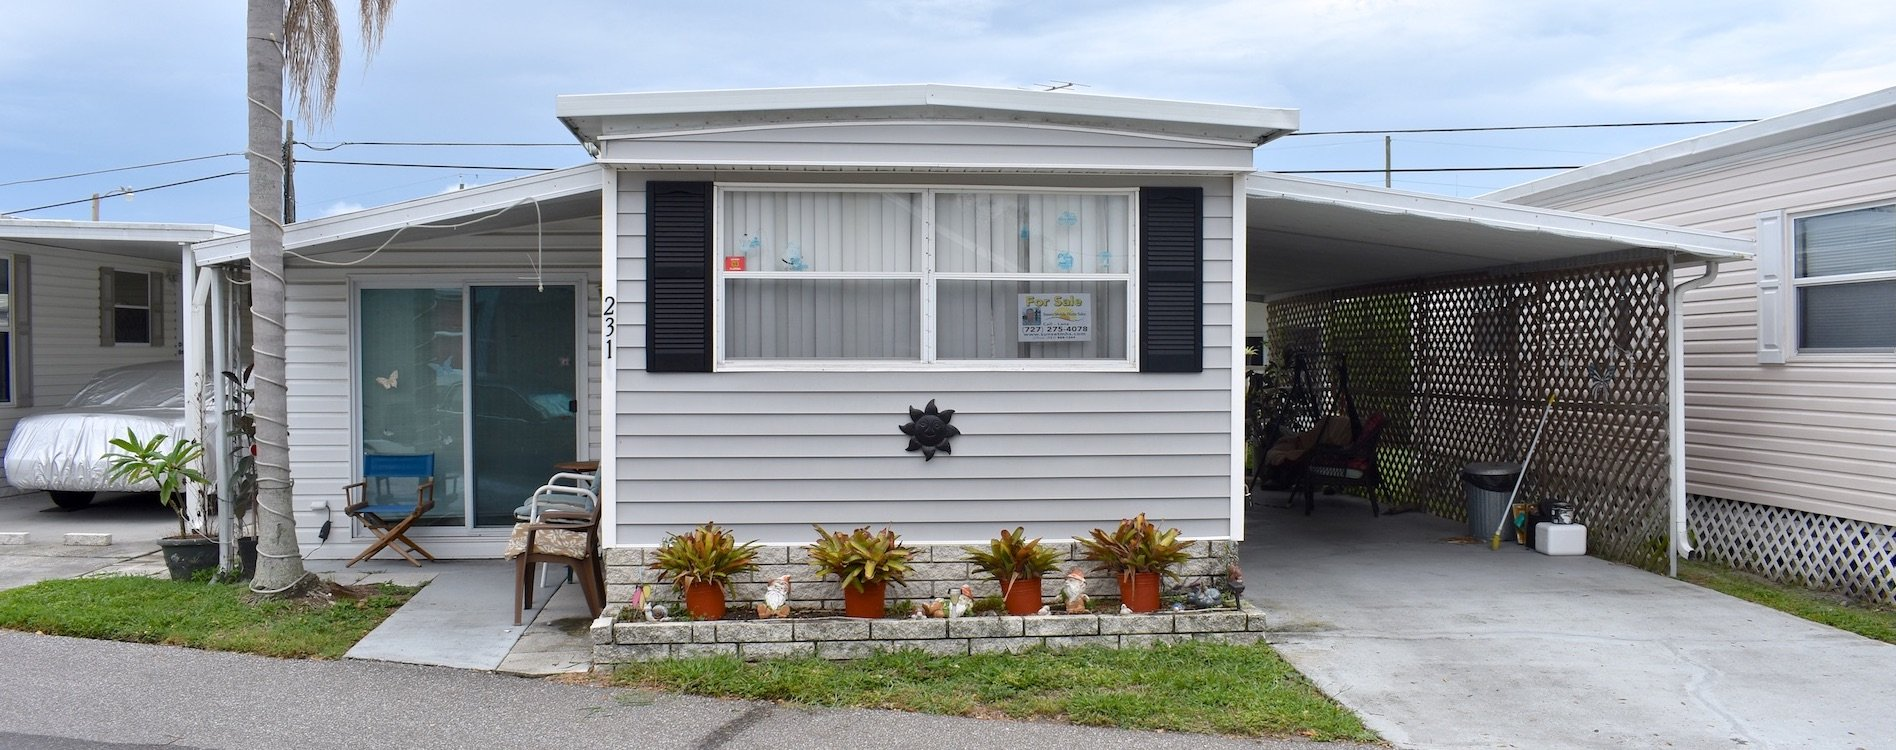 Mobile Home For Sale   Saint Petersburg, FL   Conners MHP #231